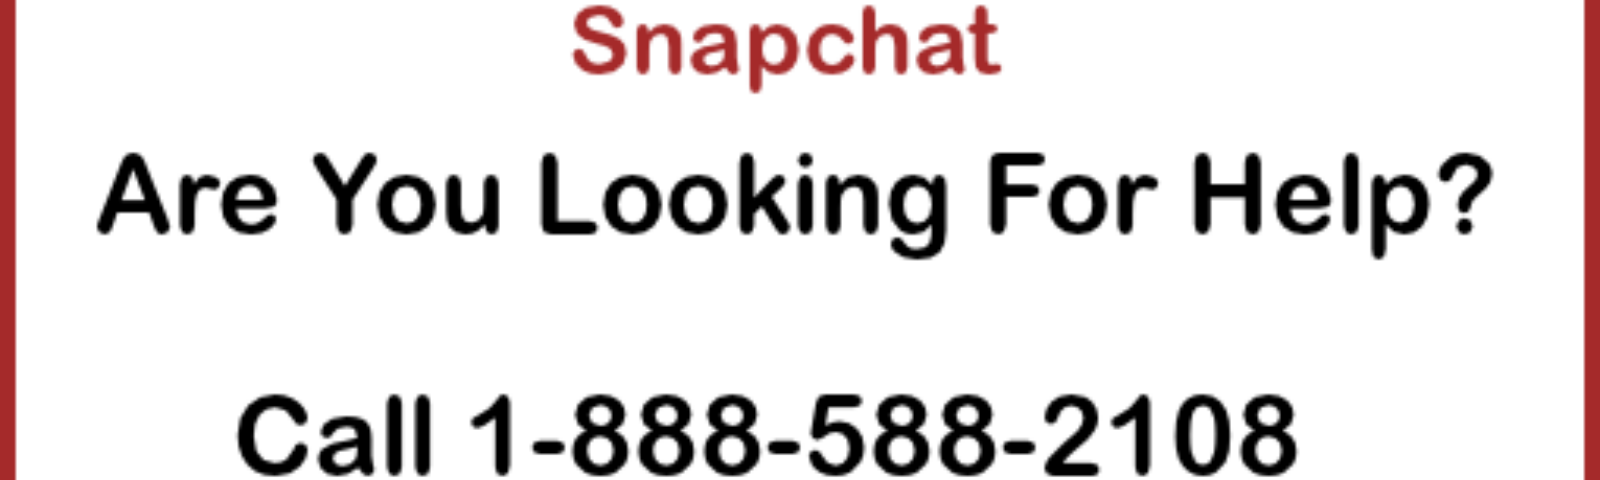 how to unlock snapchat when permanently locked